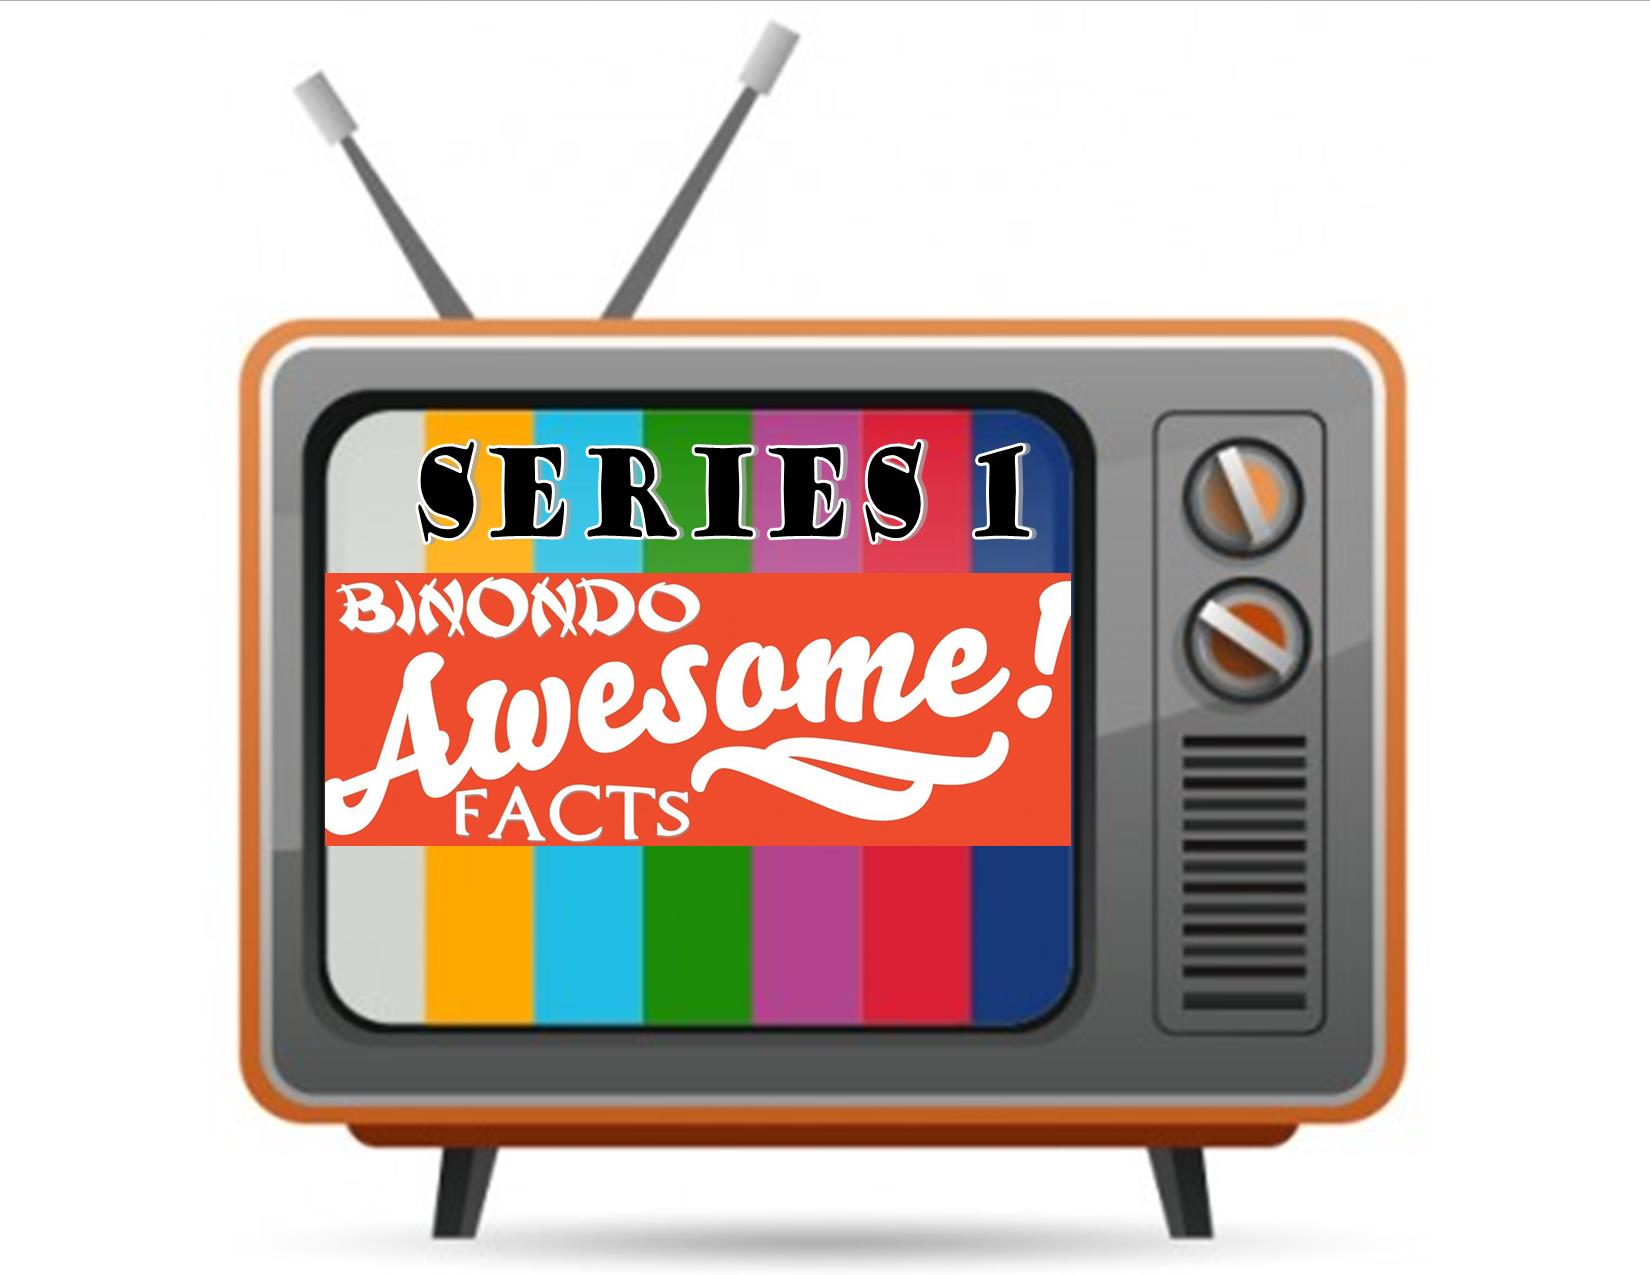 Series 1 of Binondo Awesome Facts – All About Binondo